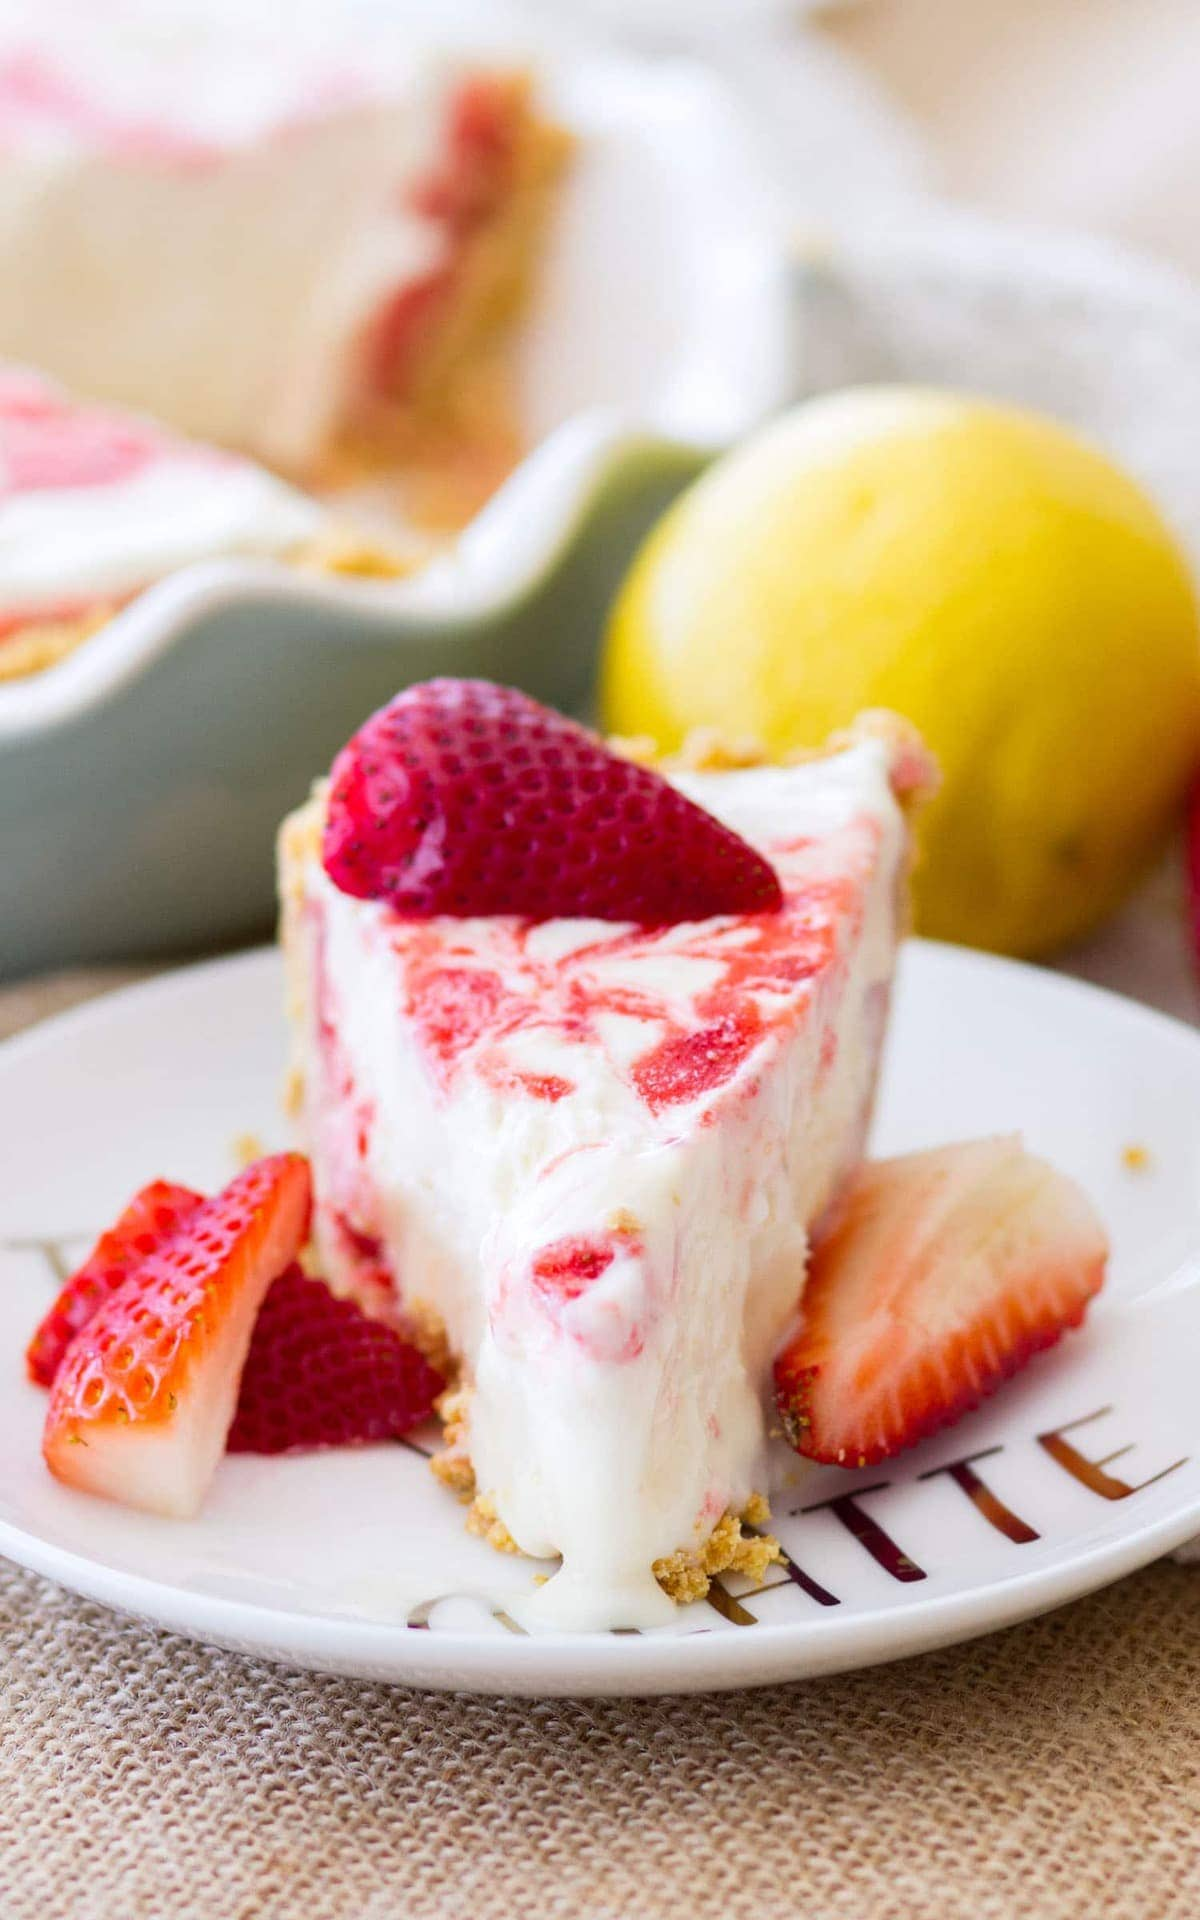 A slice of Strawberry Lemonade Pie. This icebox pie is the perfect no-bake summer dessert!